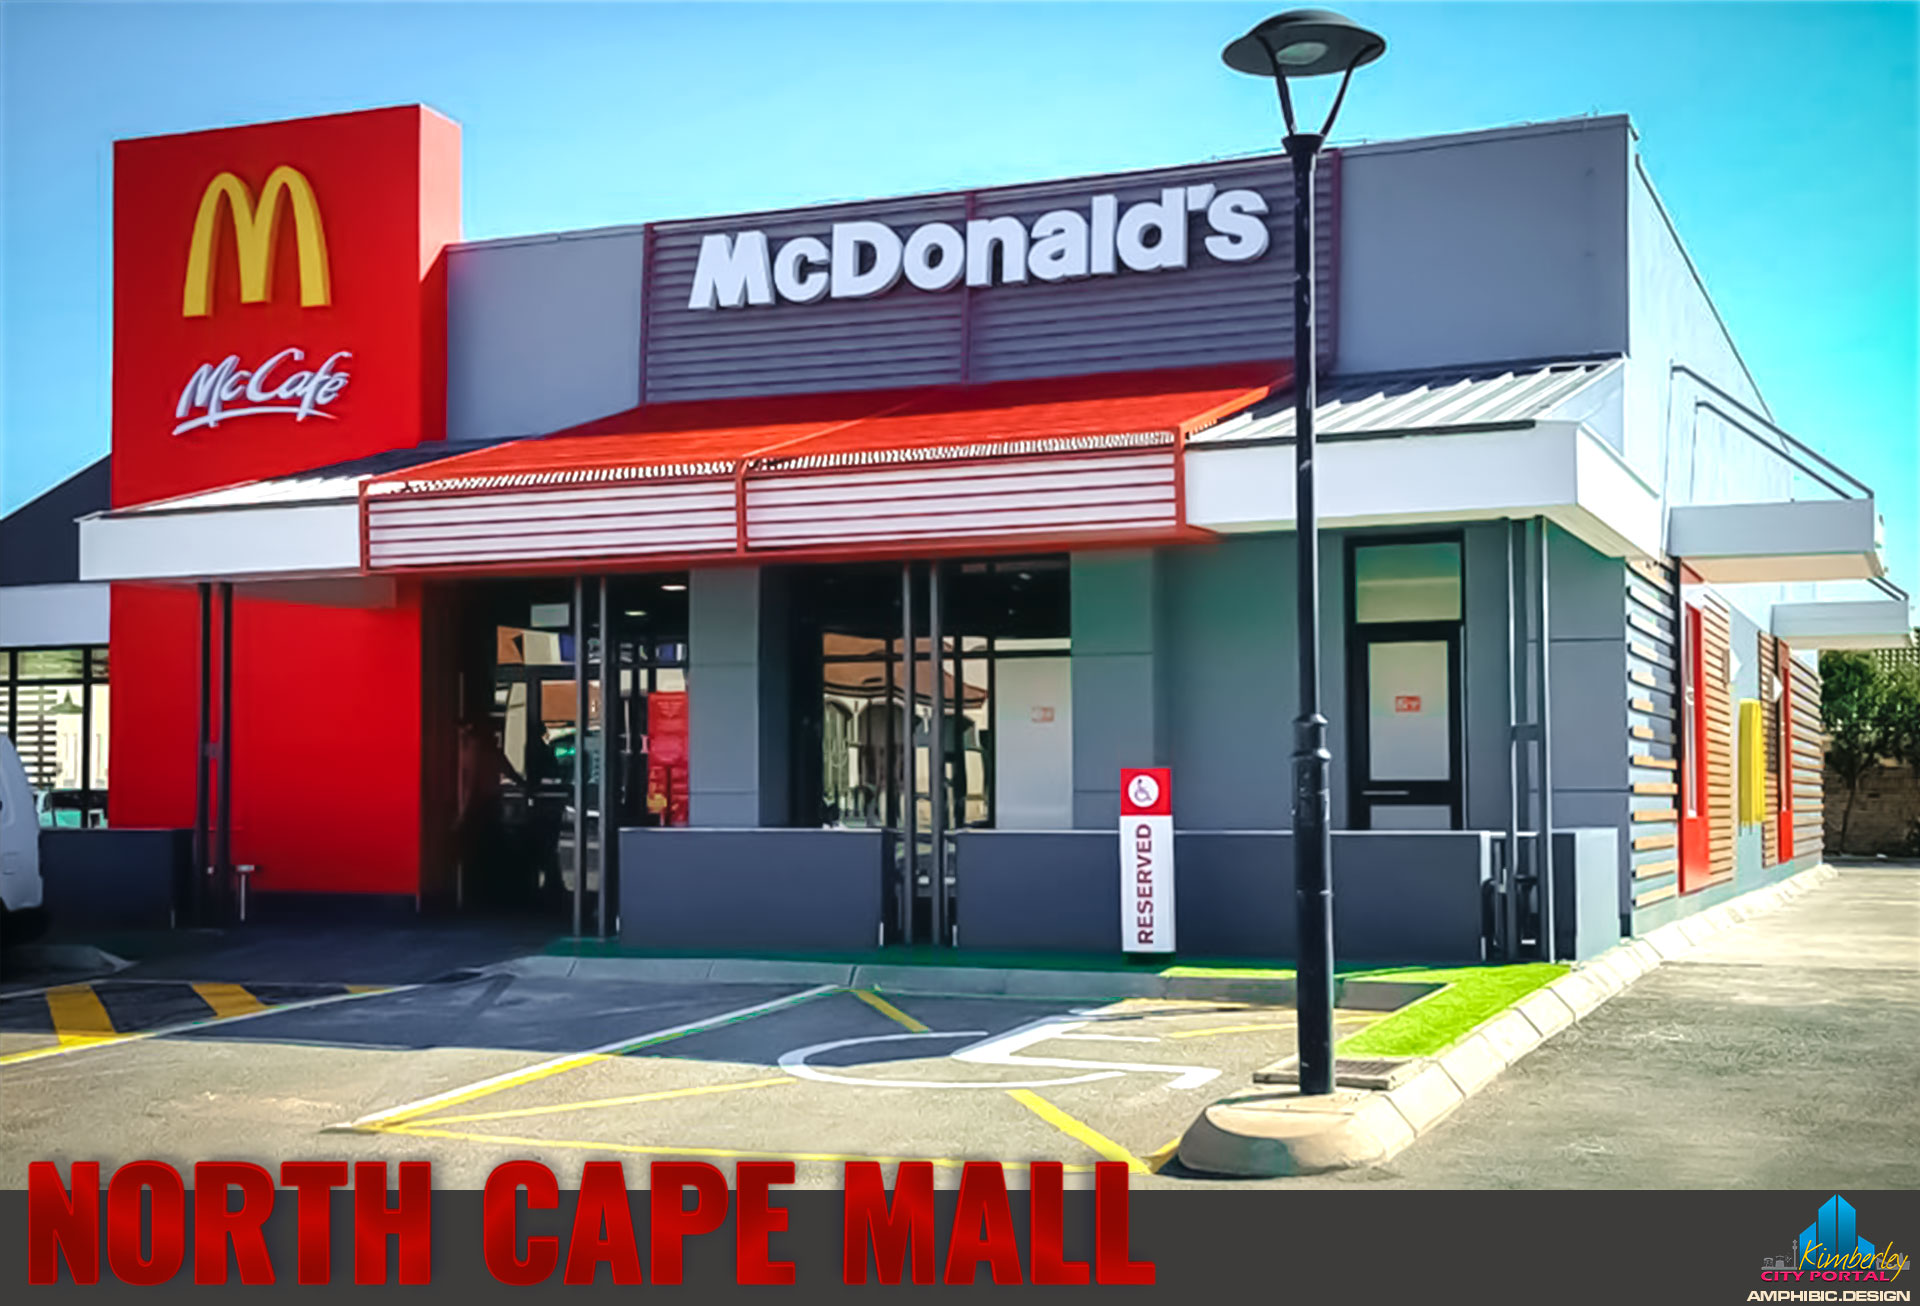 McDonalds at the North Cape Mall in Kimberley